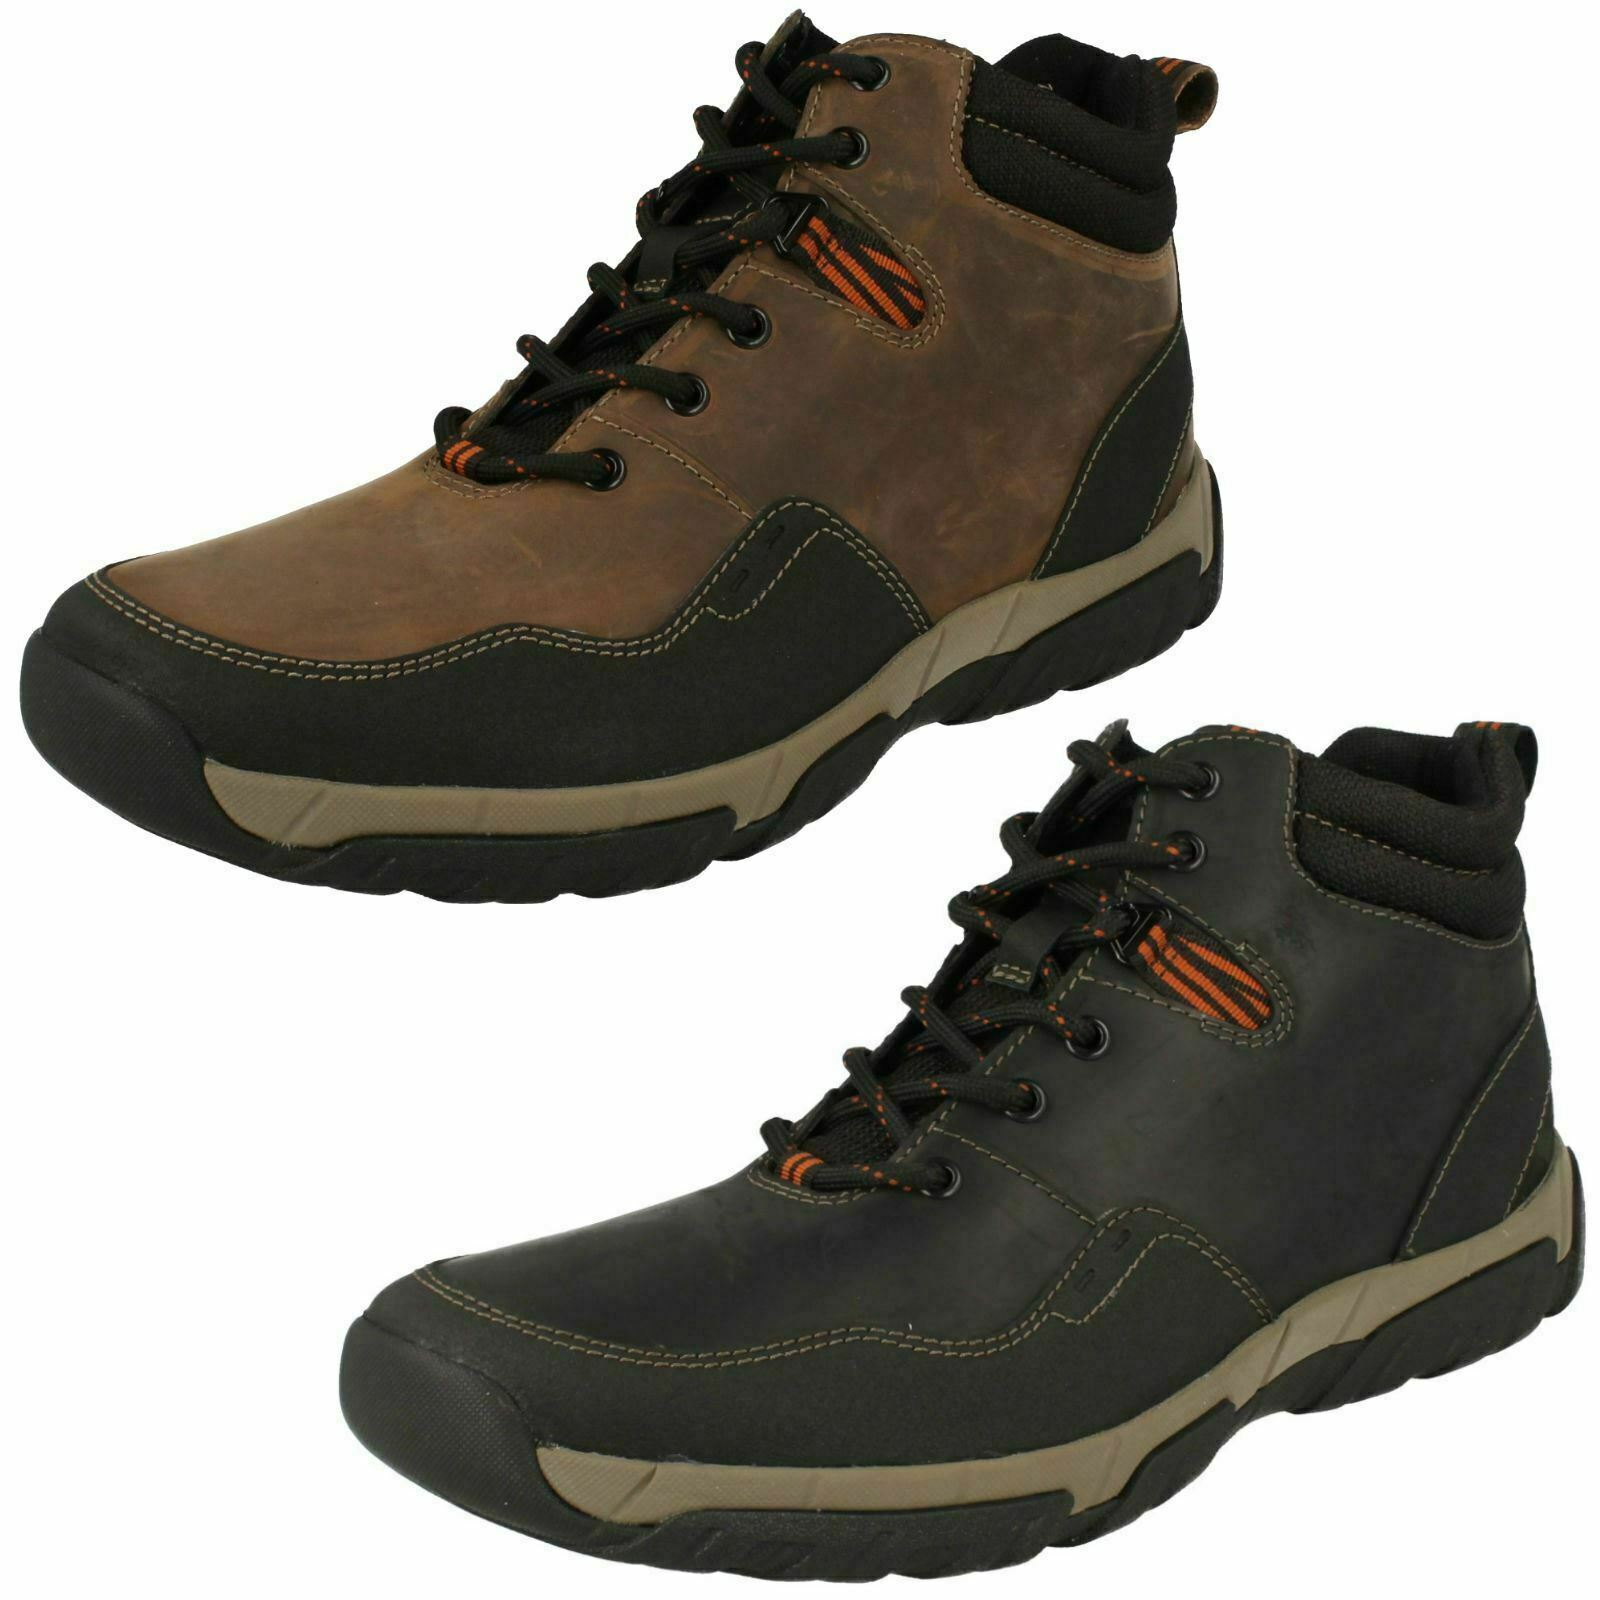 Mens Clarks Brown Lace Up Leather Waterproof Boots : Walbeck Top